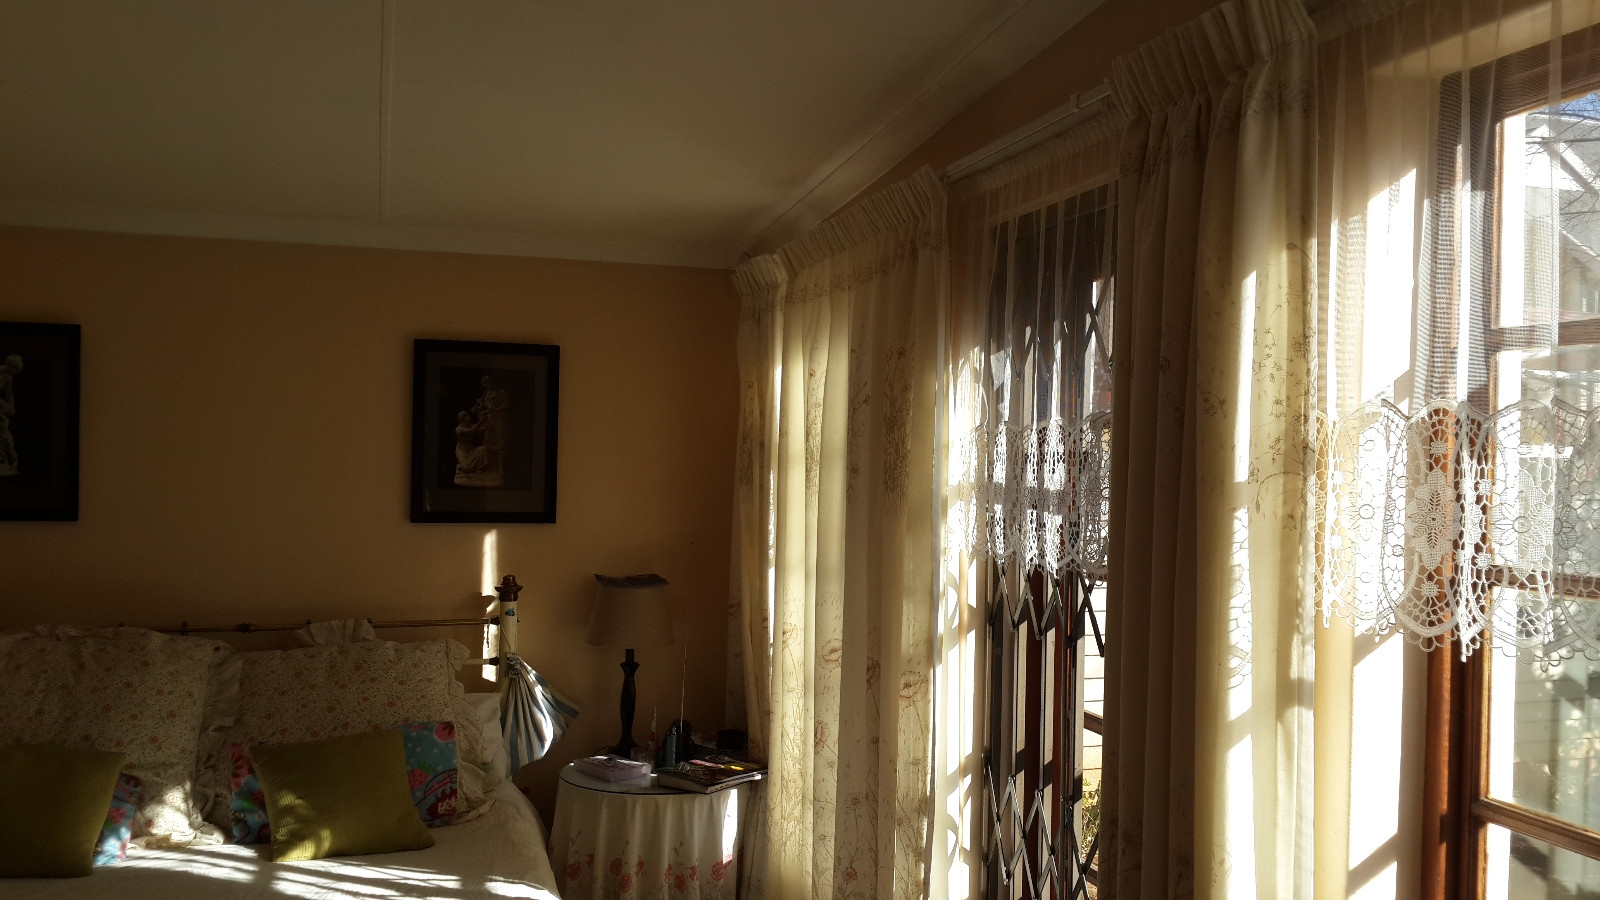 House in Bult - 20140724 091949